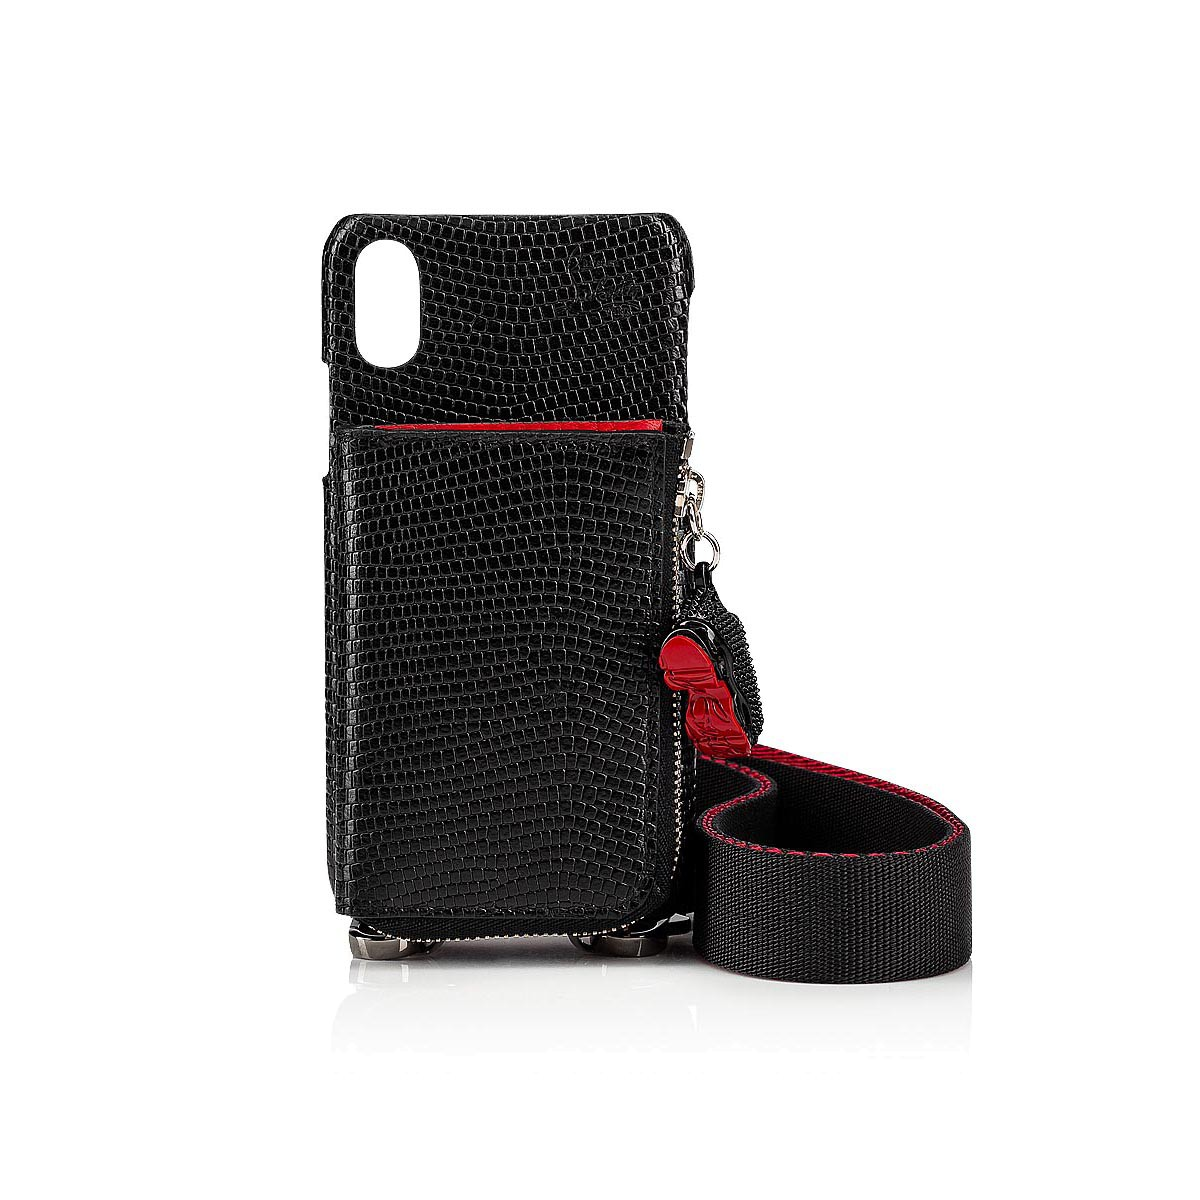 Small Leather Goods - Loubicharm Case Iphone X/xs - Christian Louboutin